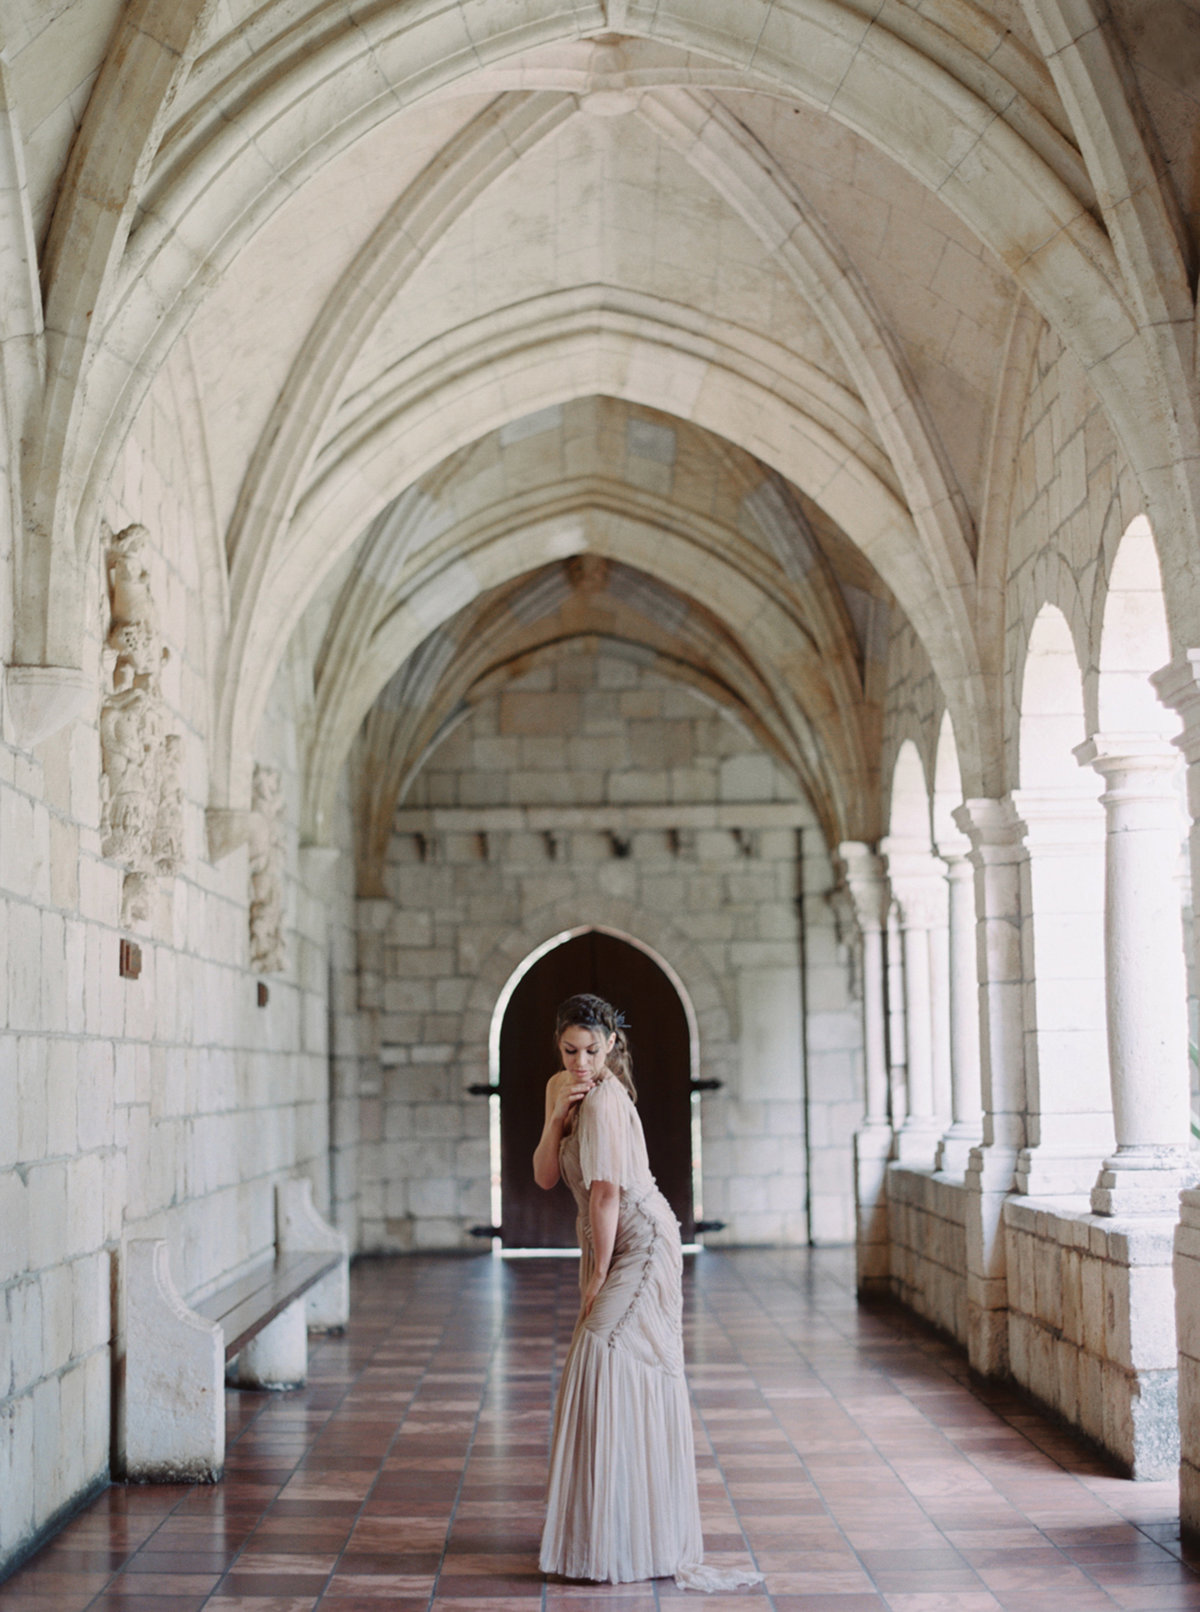 ancient-spanish-monastery-ethereal-lavender-editorial-melanie-gabrielle-photography-064